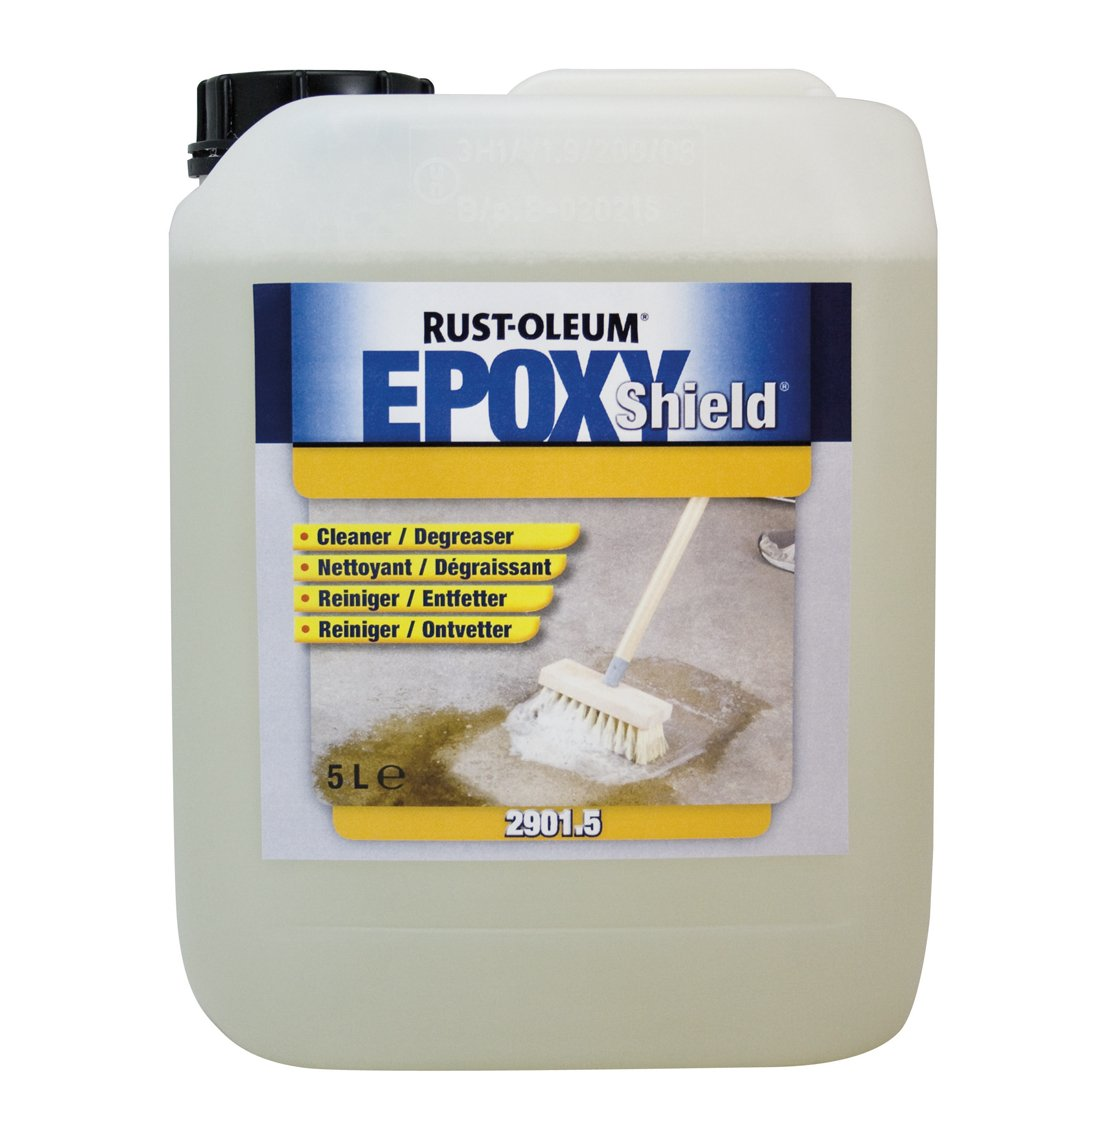 RUST-OLEUM 2901.5 Epoxy shield Cleaner/Degreaser, Ready To Use On Floors, transparent